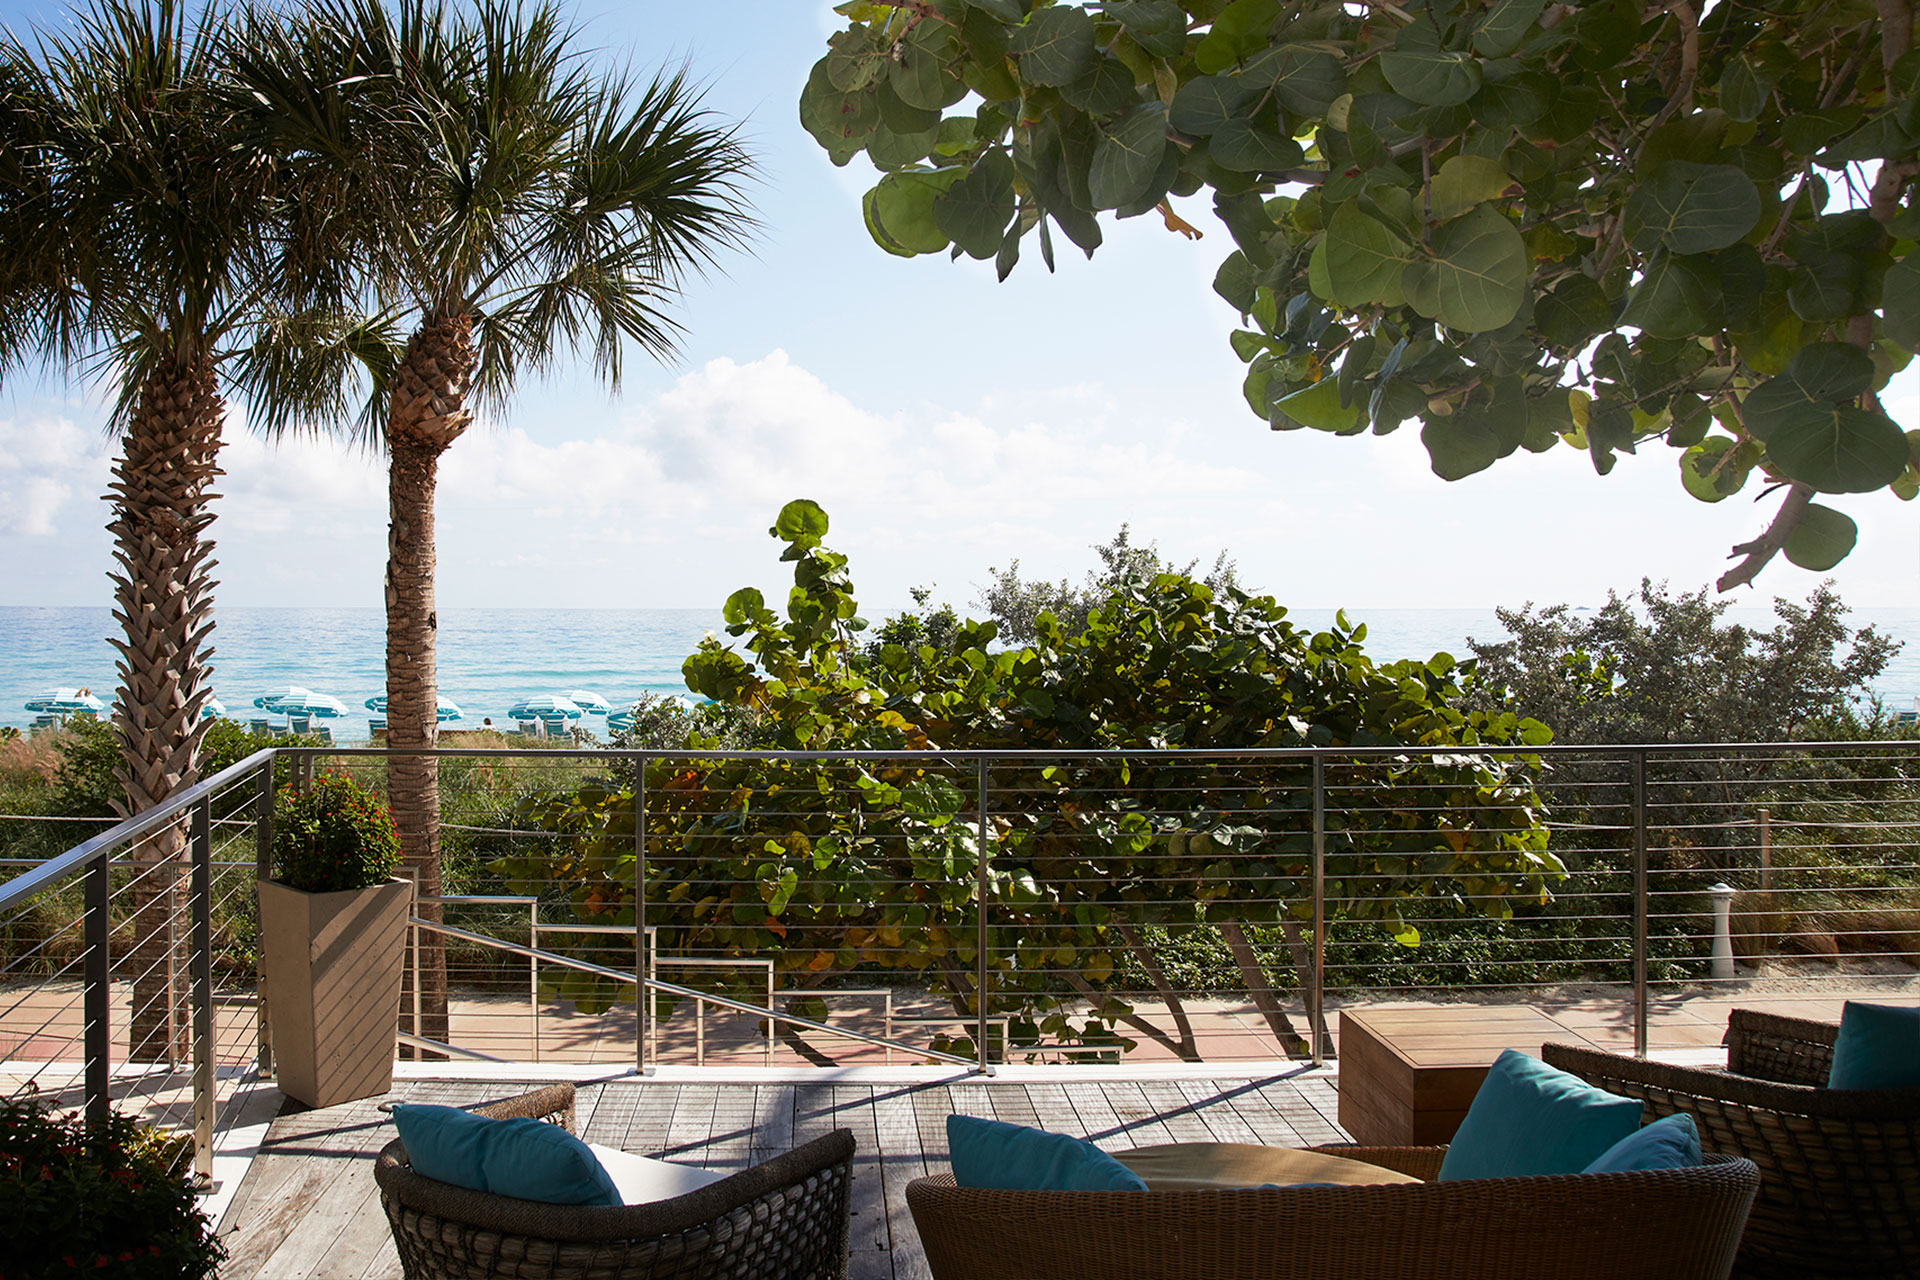 Image of an outdoor seating area. There are woven chairs and couches with blue throw pillows on a balcony. The balcony is surrounded by greenery such as palm tress and bushes. There is a view of the ocean and the beach chairs and umbrellas that line the sand.